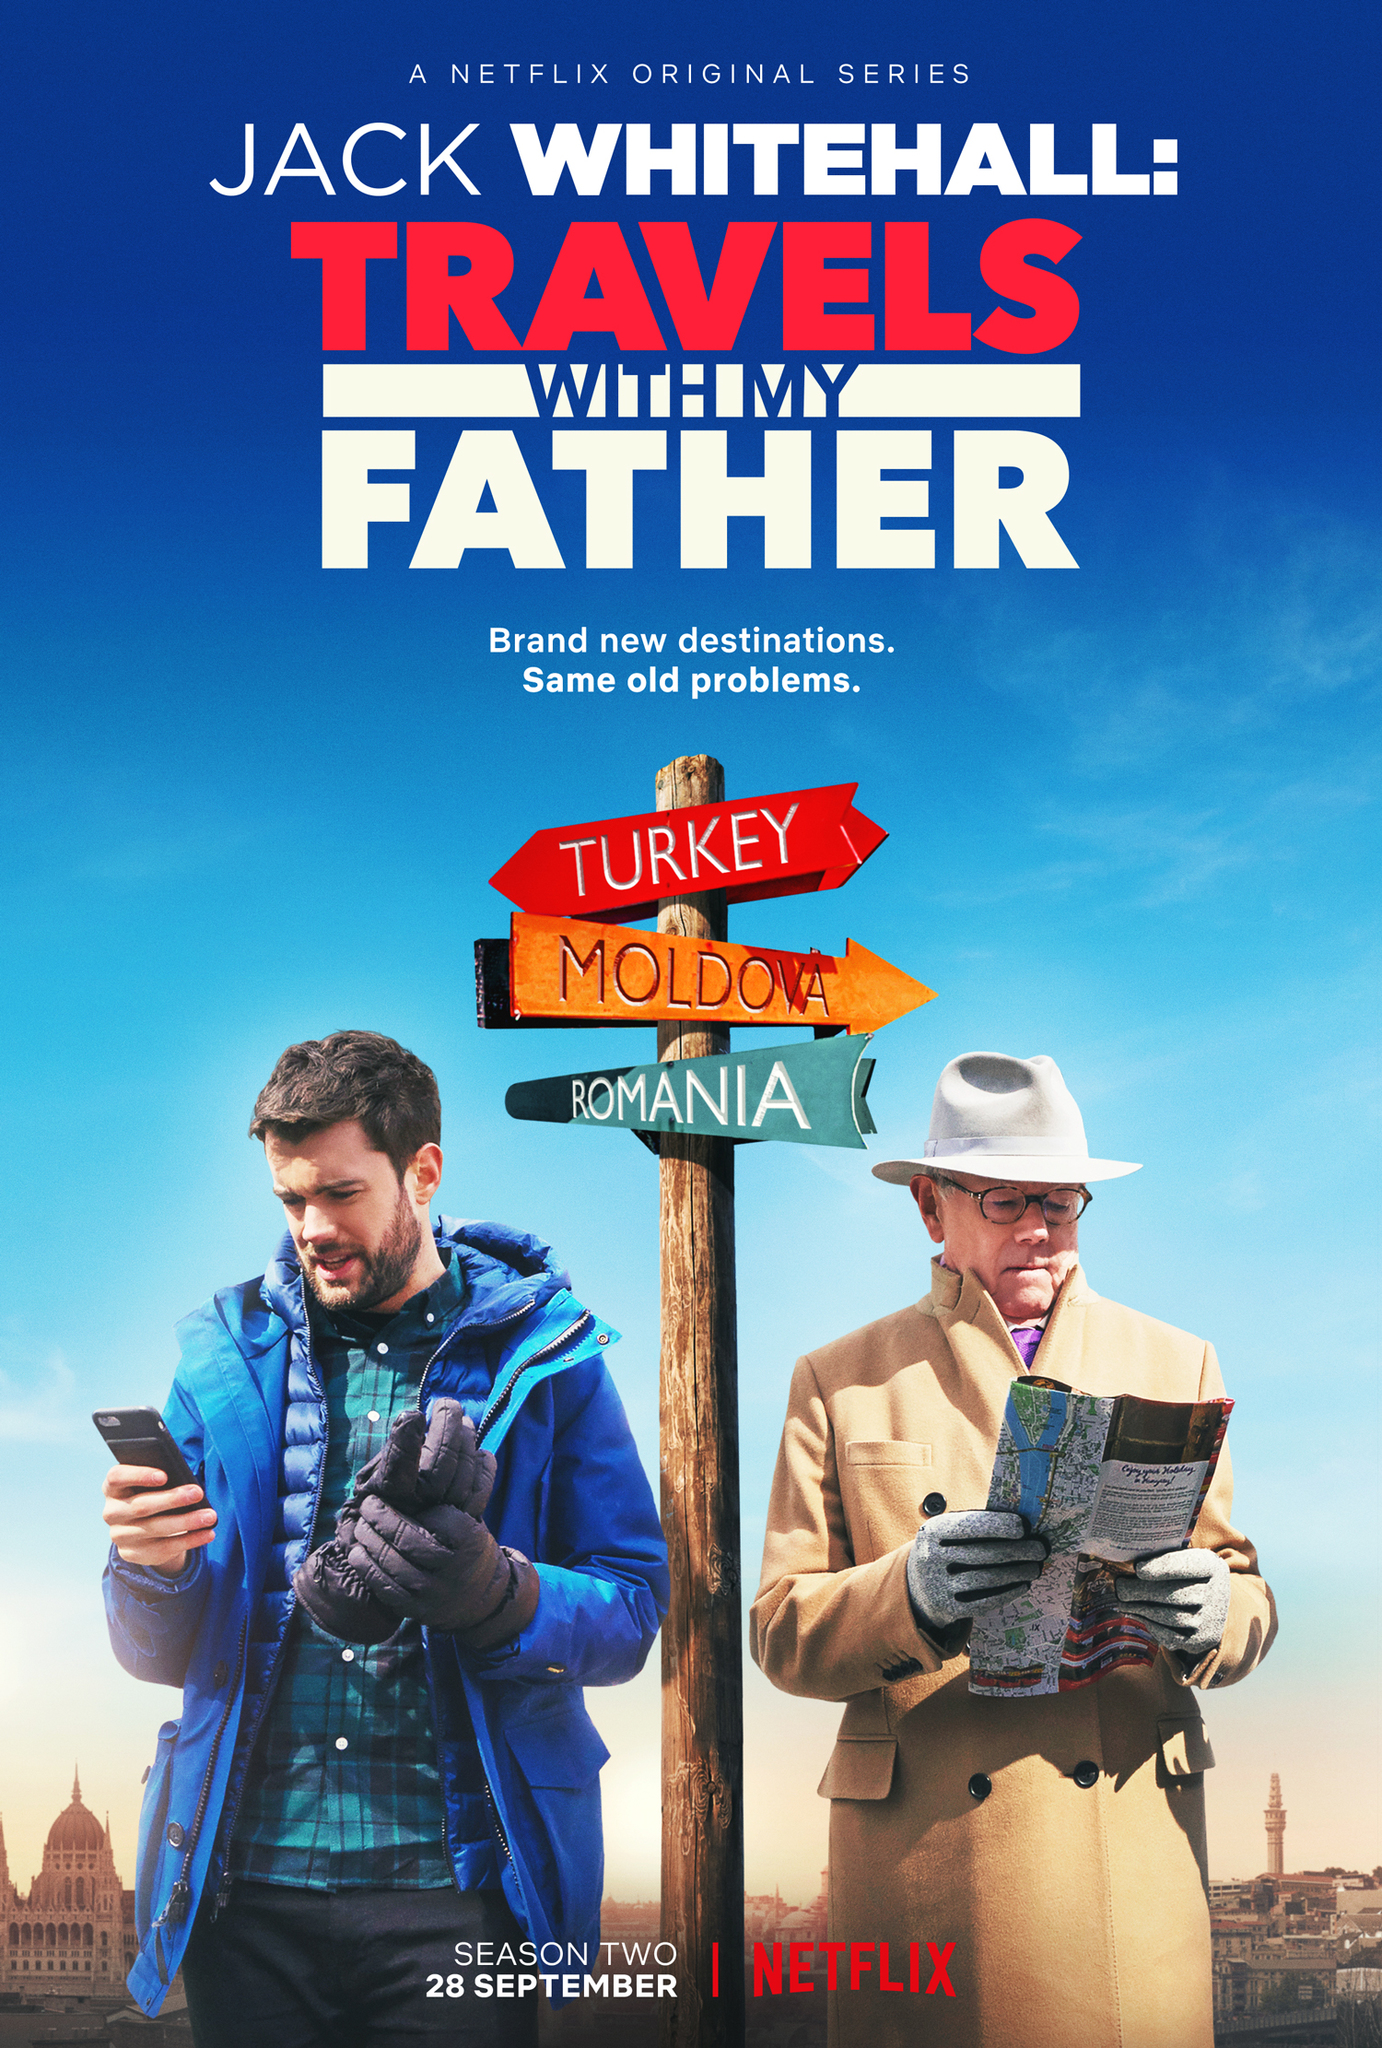 Jack Whitehall: Travels with My Father (TV Series 2017– ) - IMDb